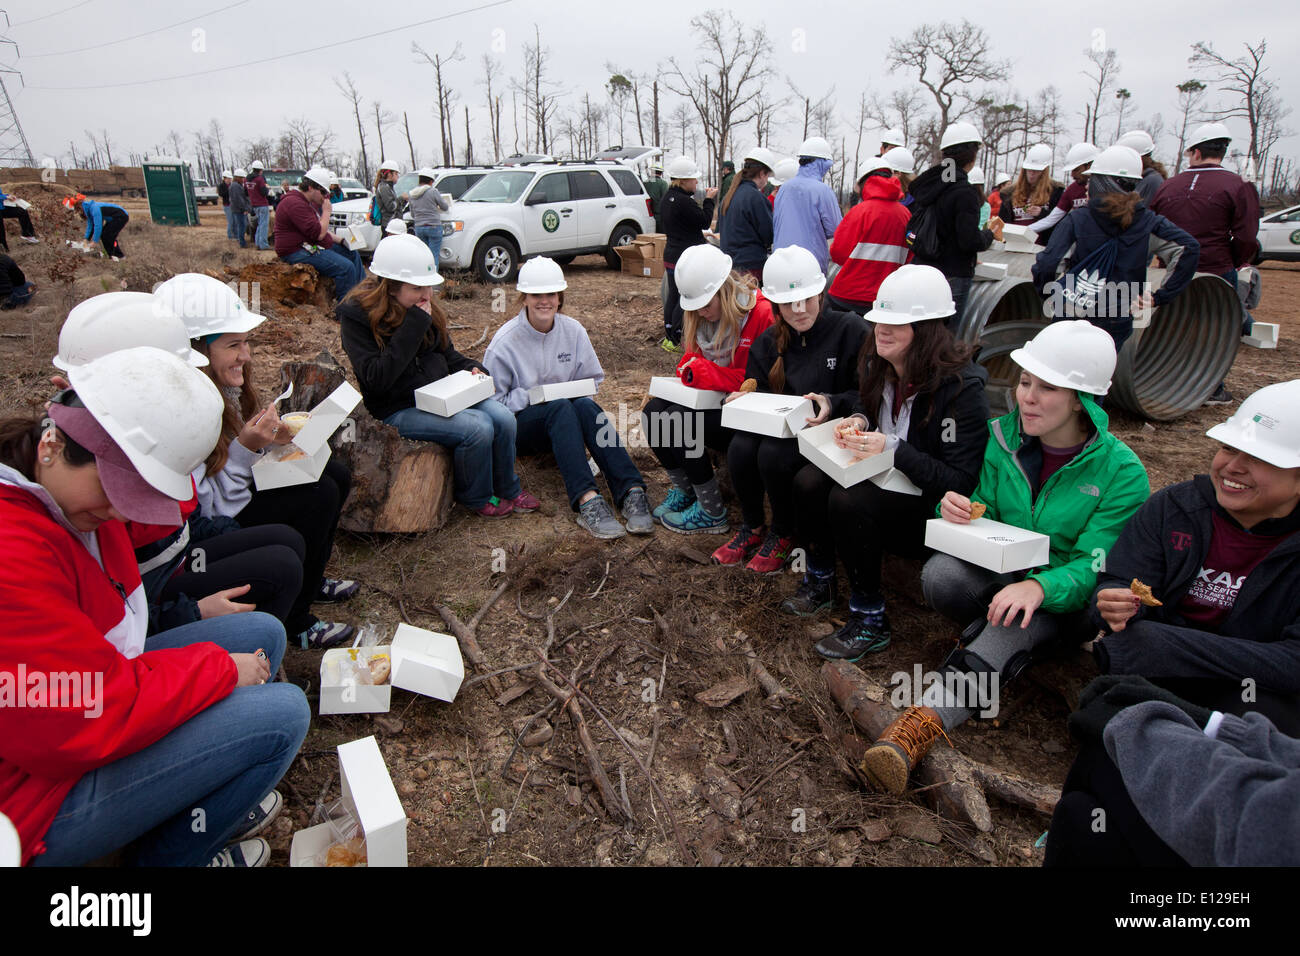 College students participate in 'Aggie Replant' on-going effort to replant loblolly pine forests ravaged by wildfires in 2012 - Stock Image